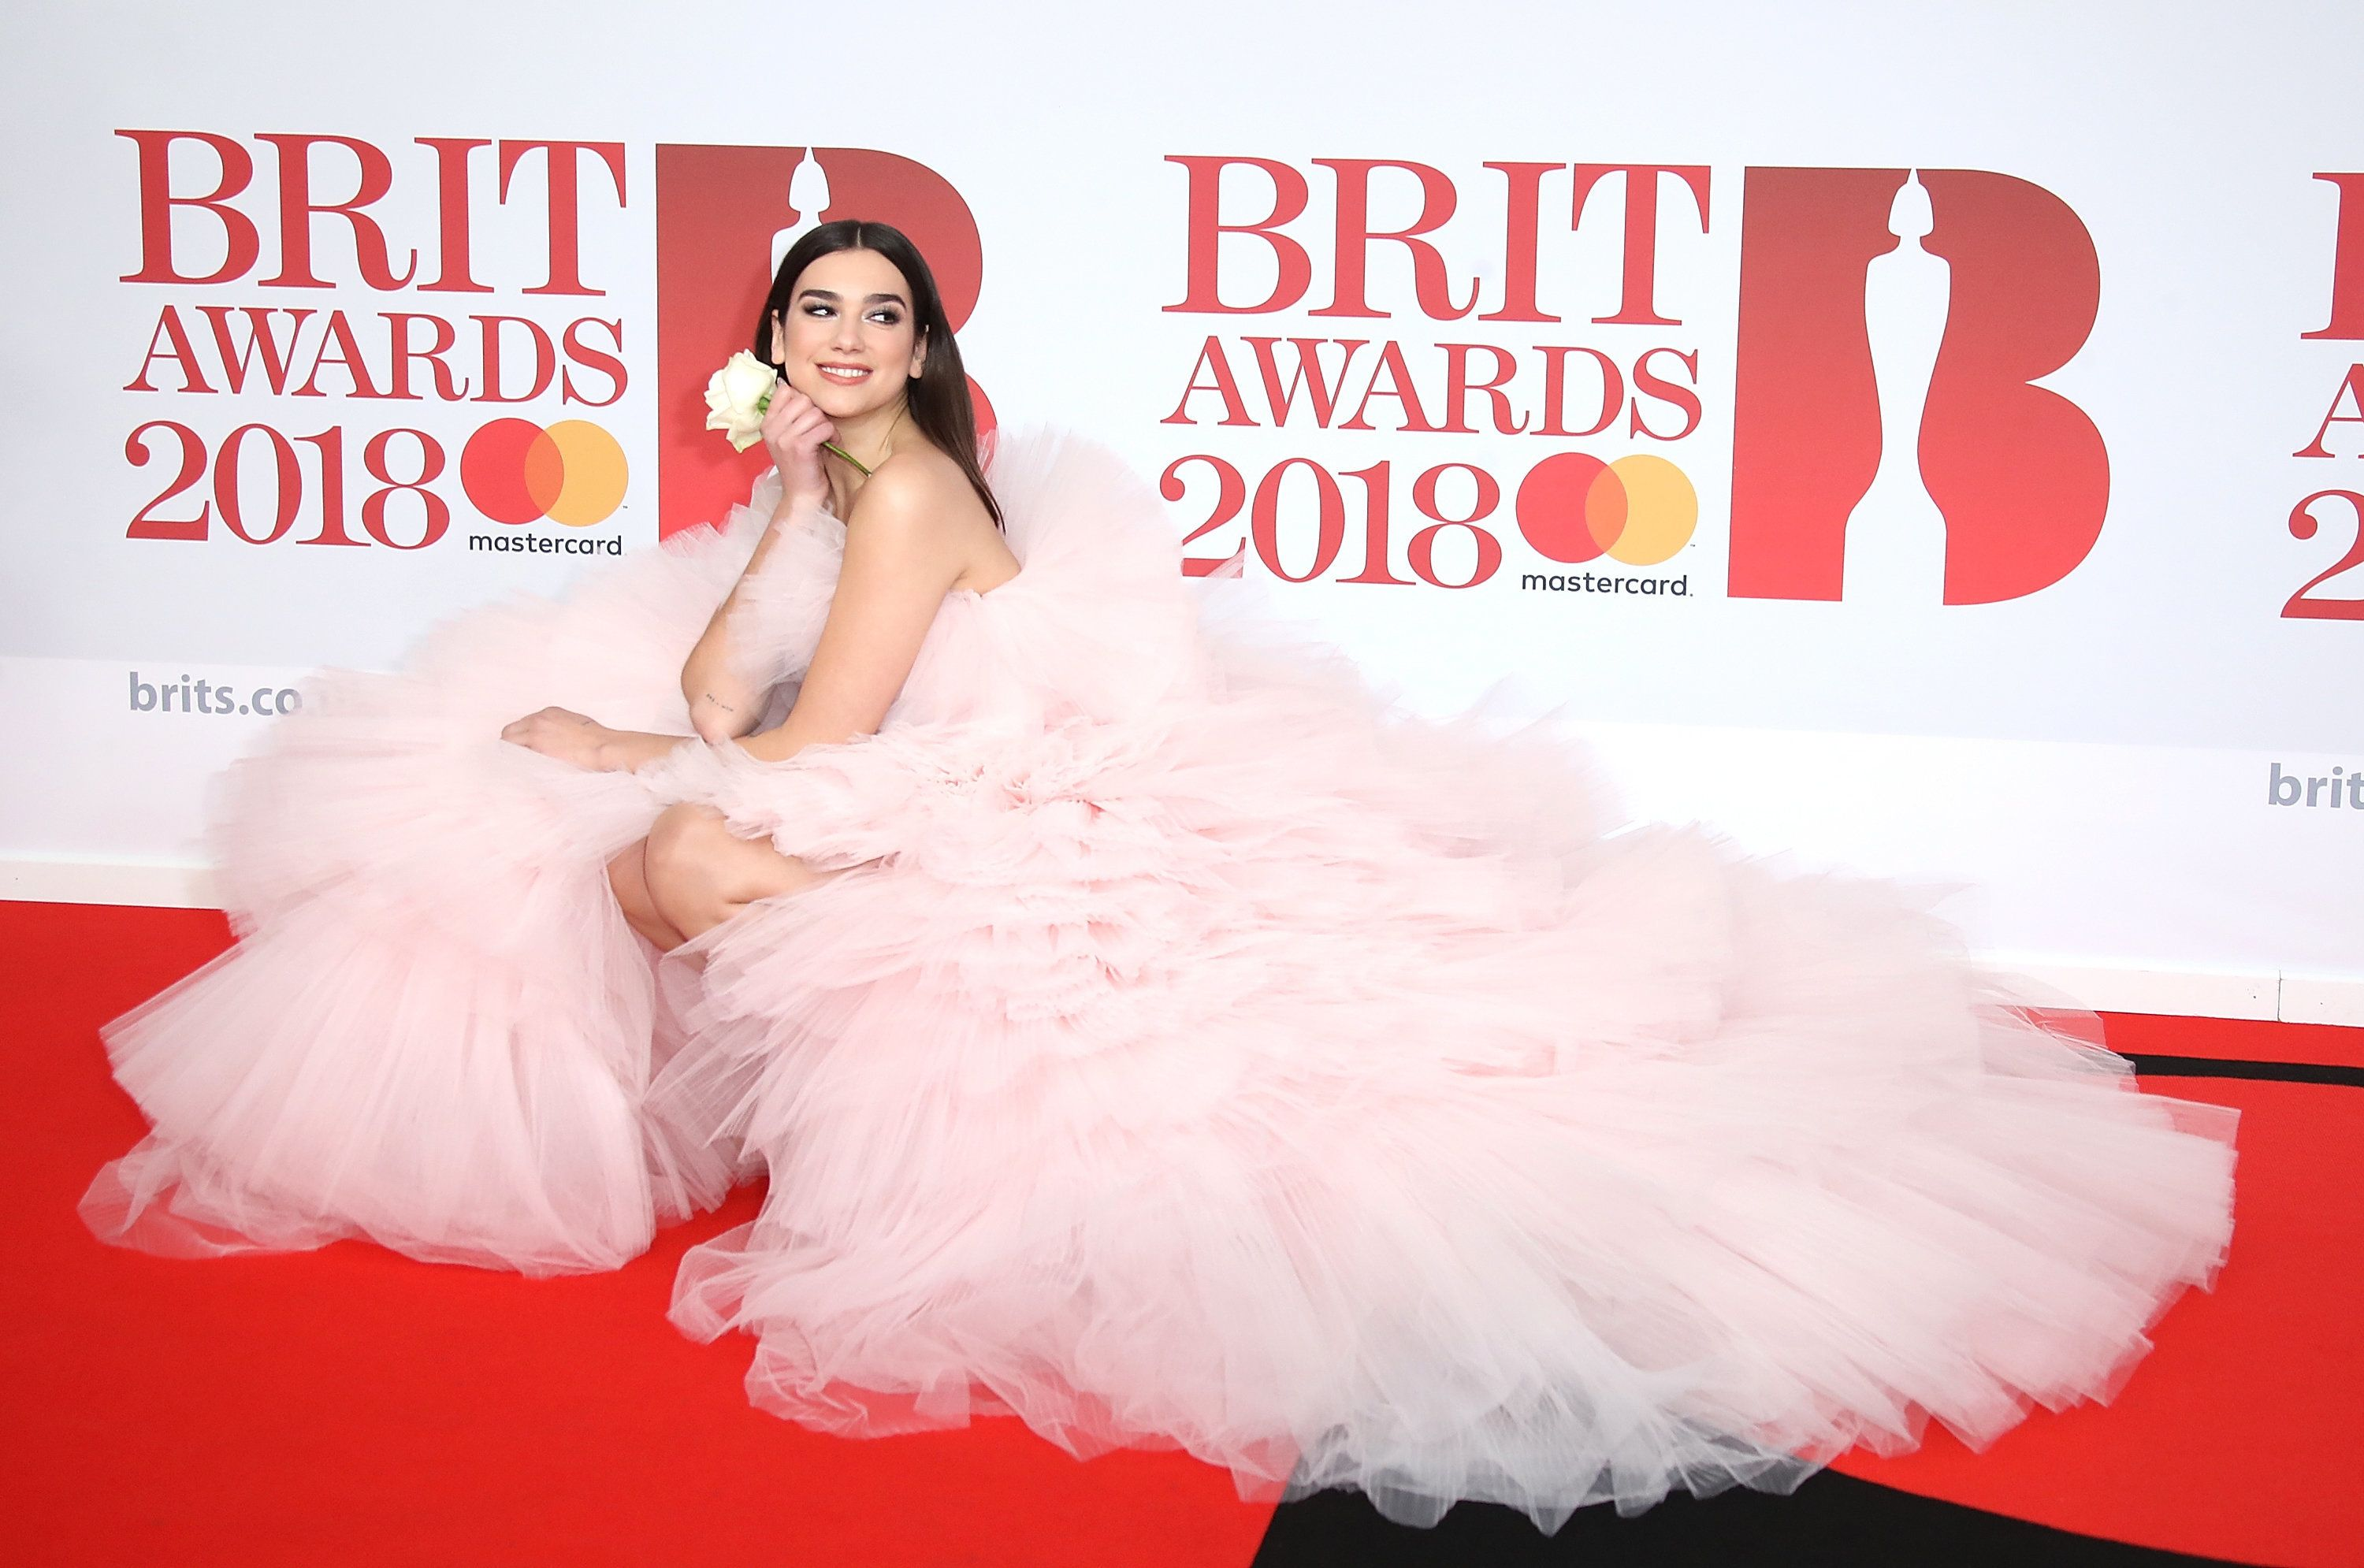 Looks We Love: Dua Lipa In Acres Of Pink Frills At The